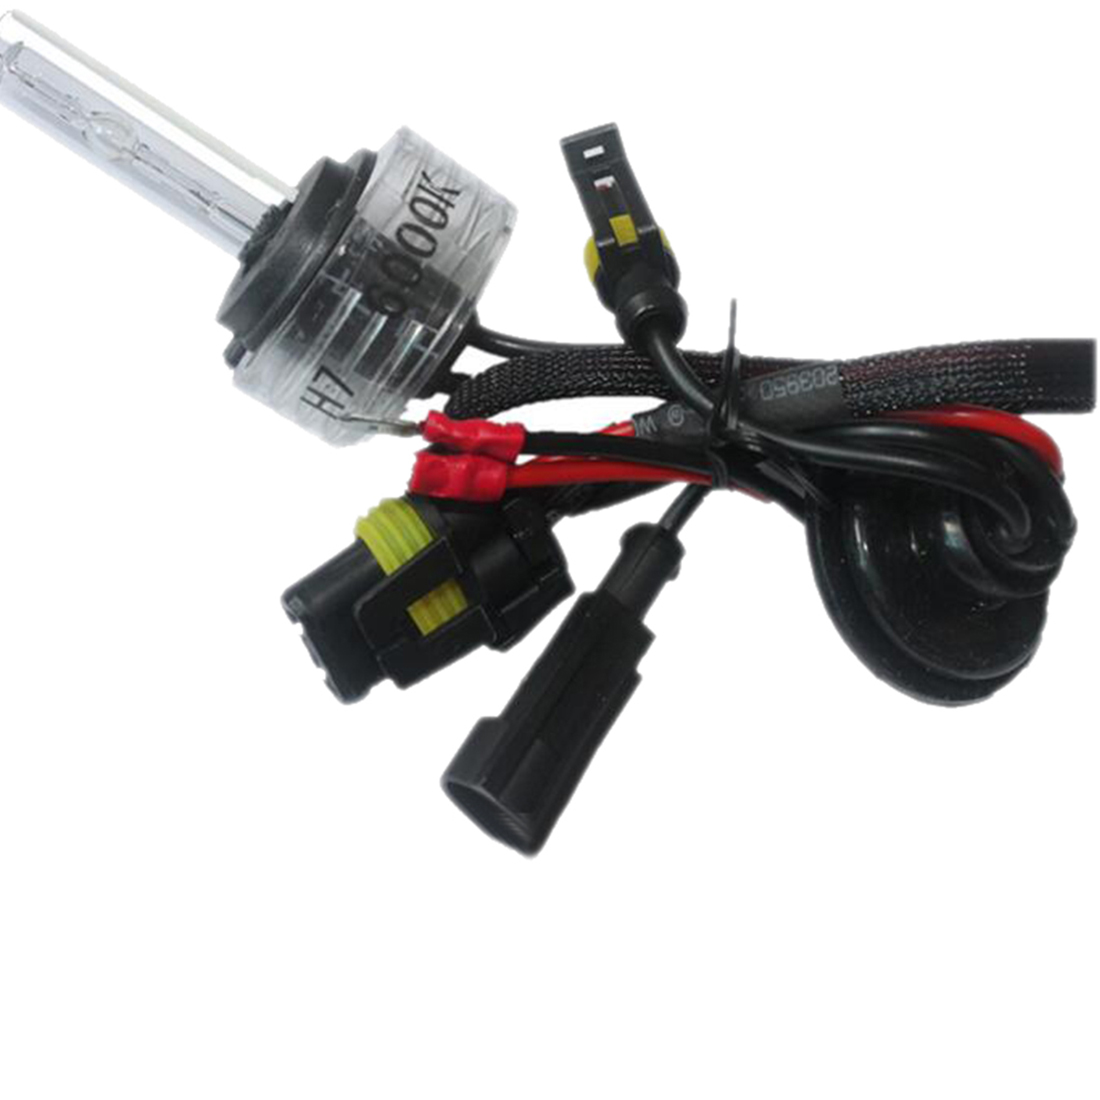 Tonewan Double Light 12v 55W H7 Xenon KIT LED Fog Tail Turn DRL Head - Luces del coche - foto 4